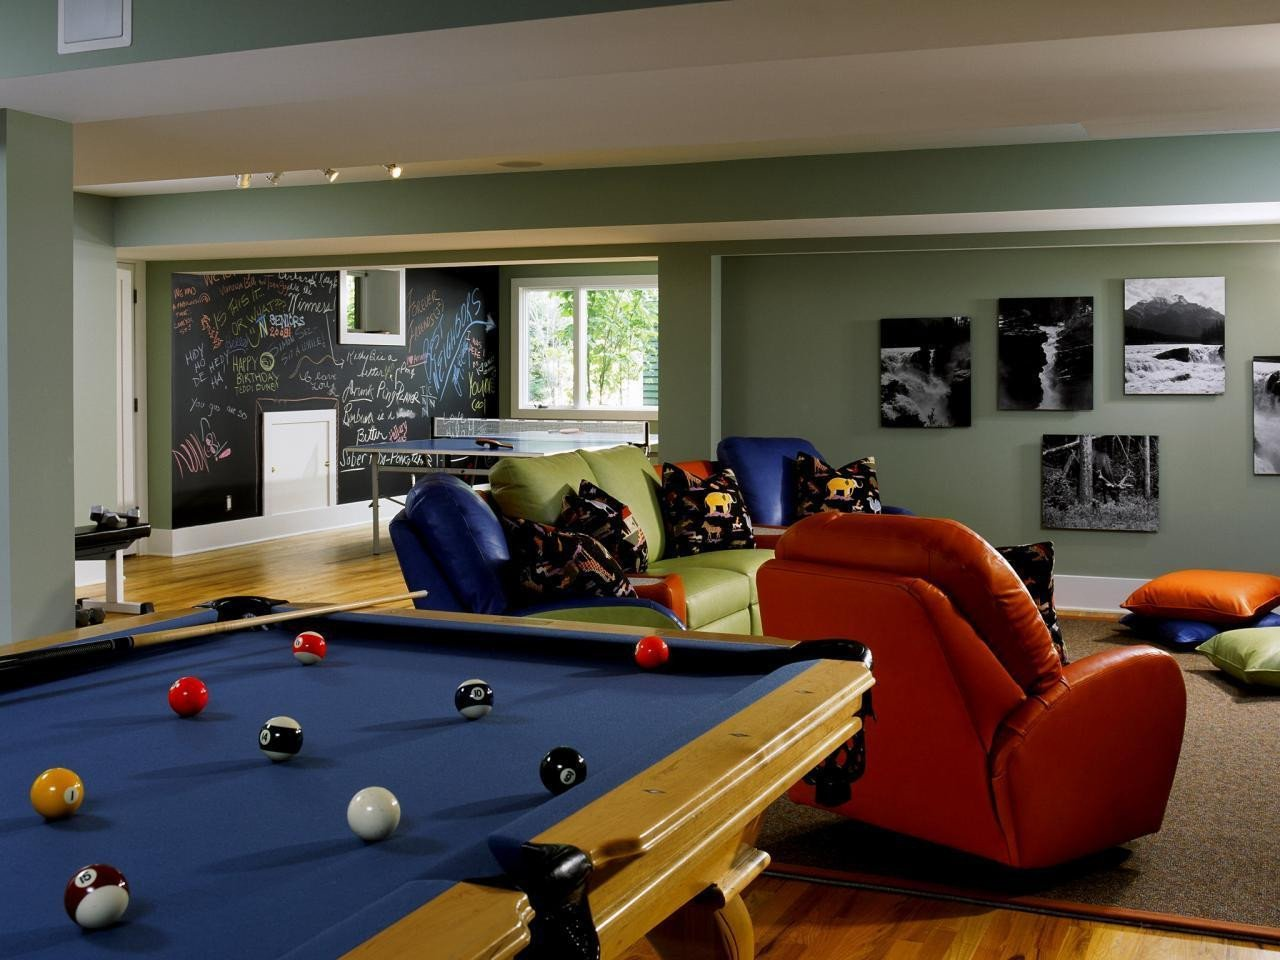 Room Decor Games for Adults Fresh Luxury Room Decorating Games for Adults Savvy Ways About Things Can Teach Us